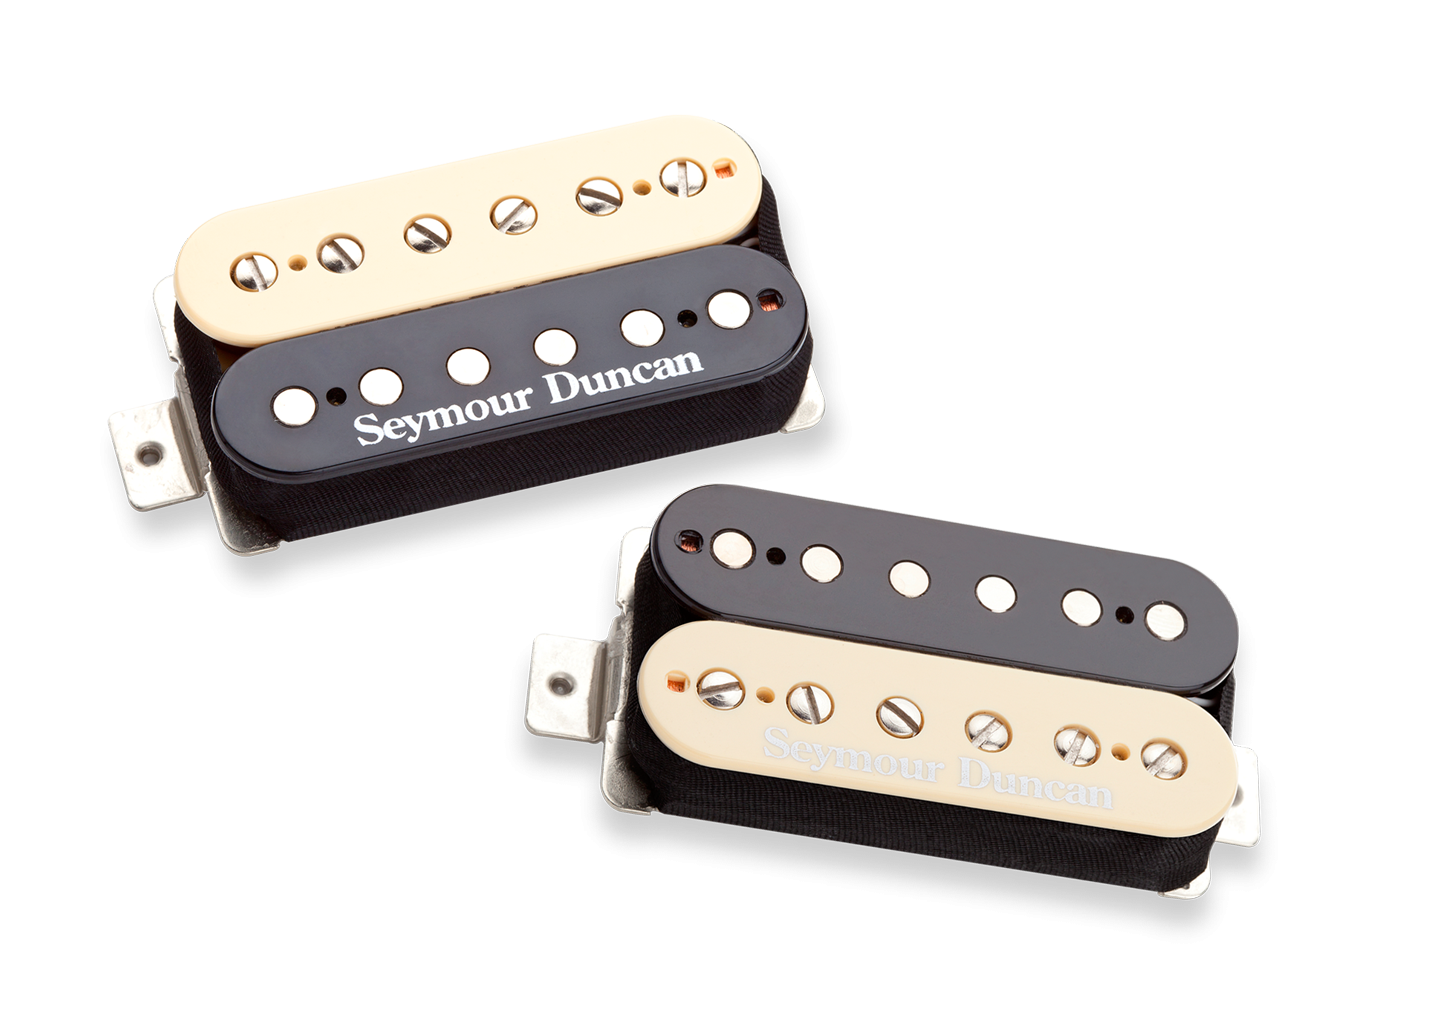 Seymour Duncan Duncan Distortion Mayhem Set SH-6 - Zebra